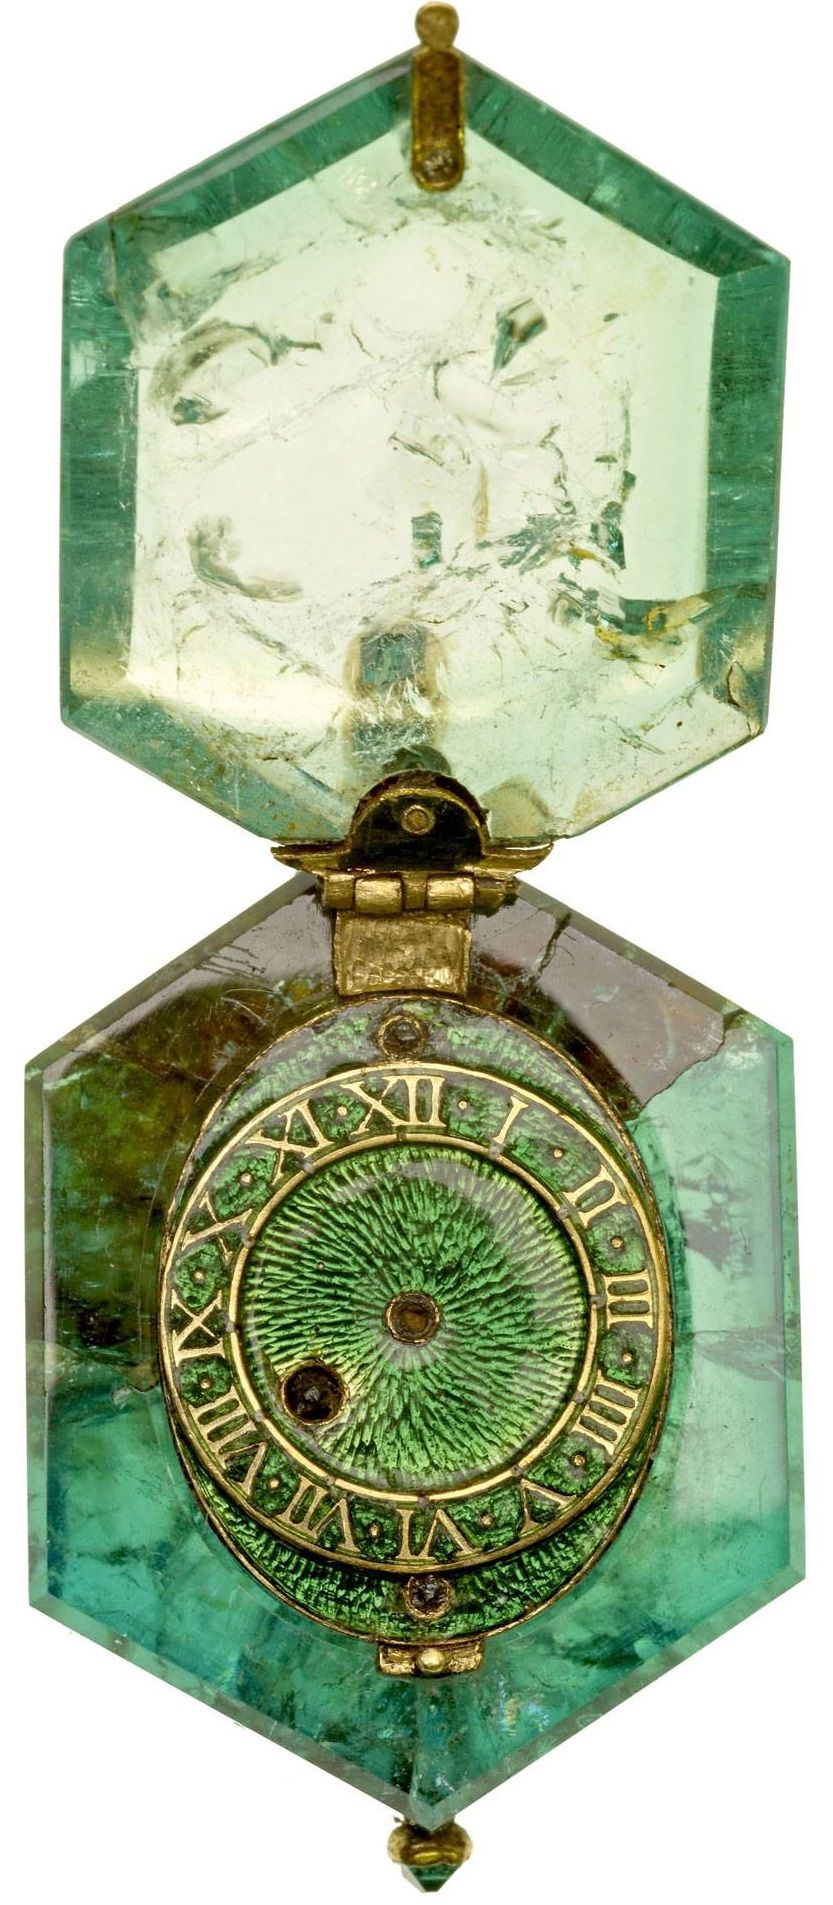 Emerald Watch 2 Quot Vintage Antique Jewelry Group Board